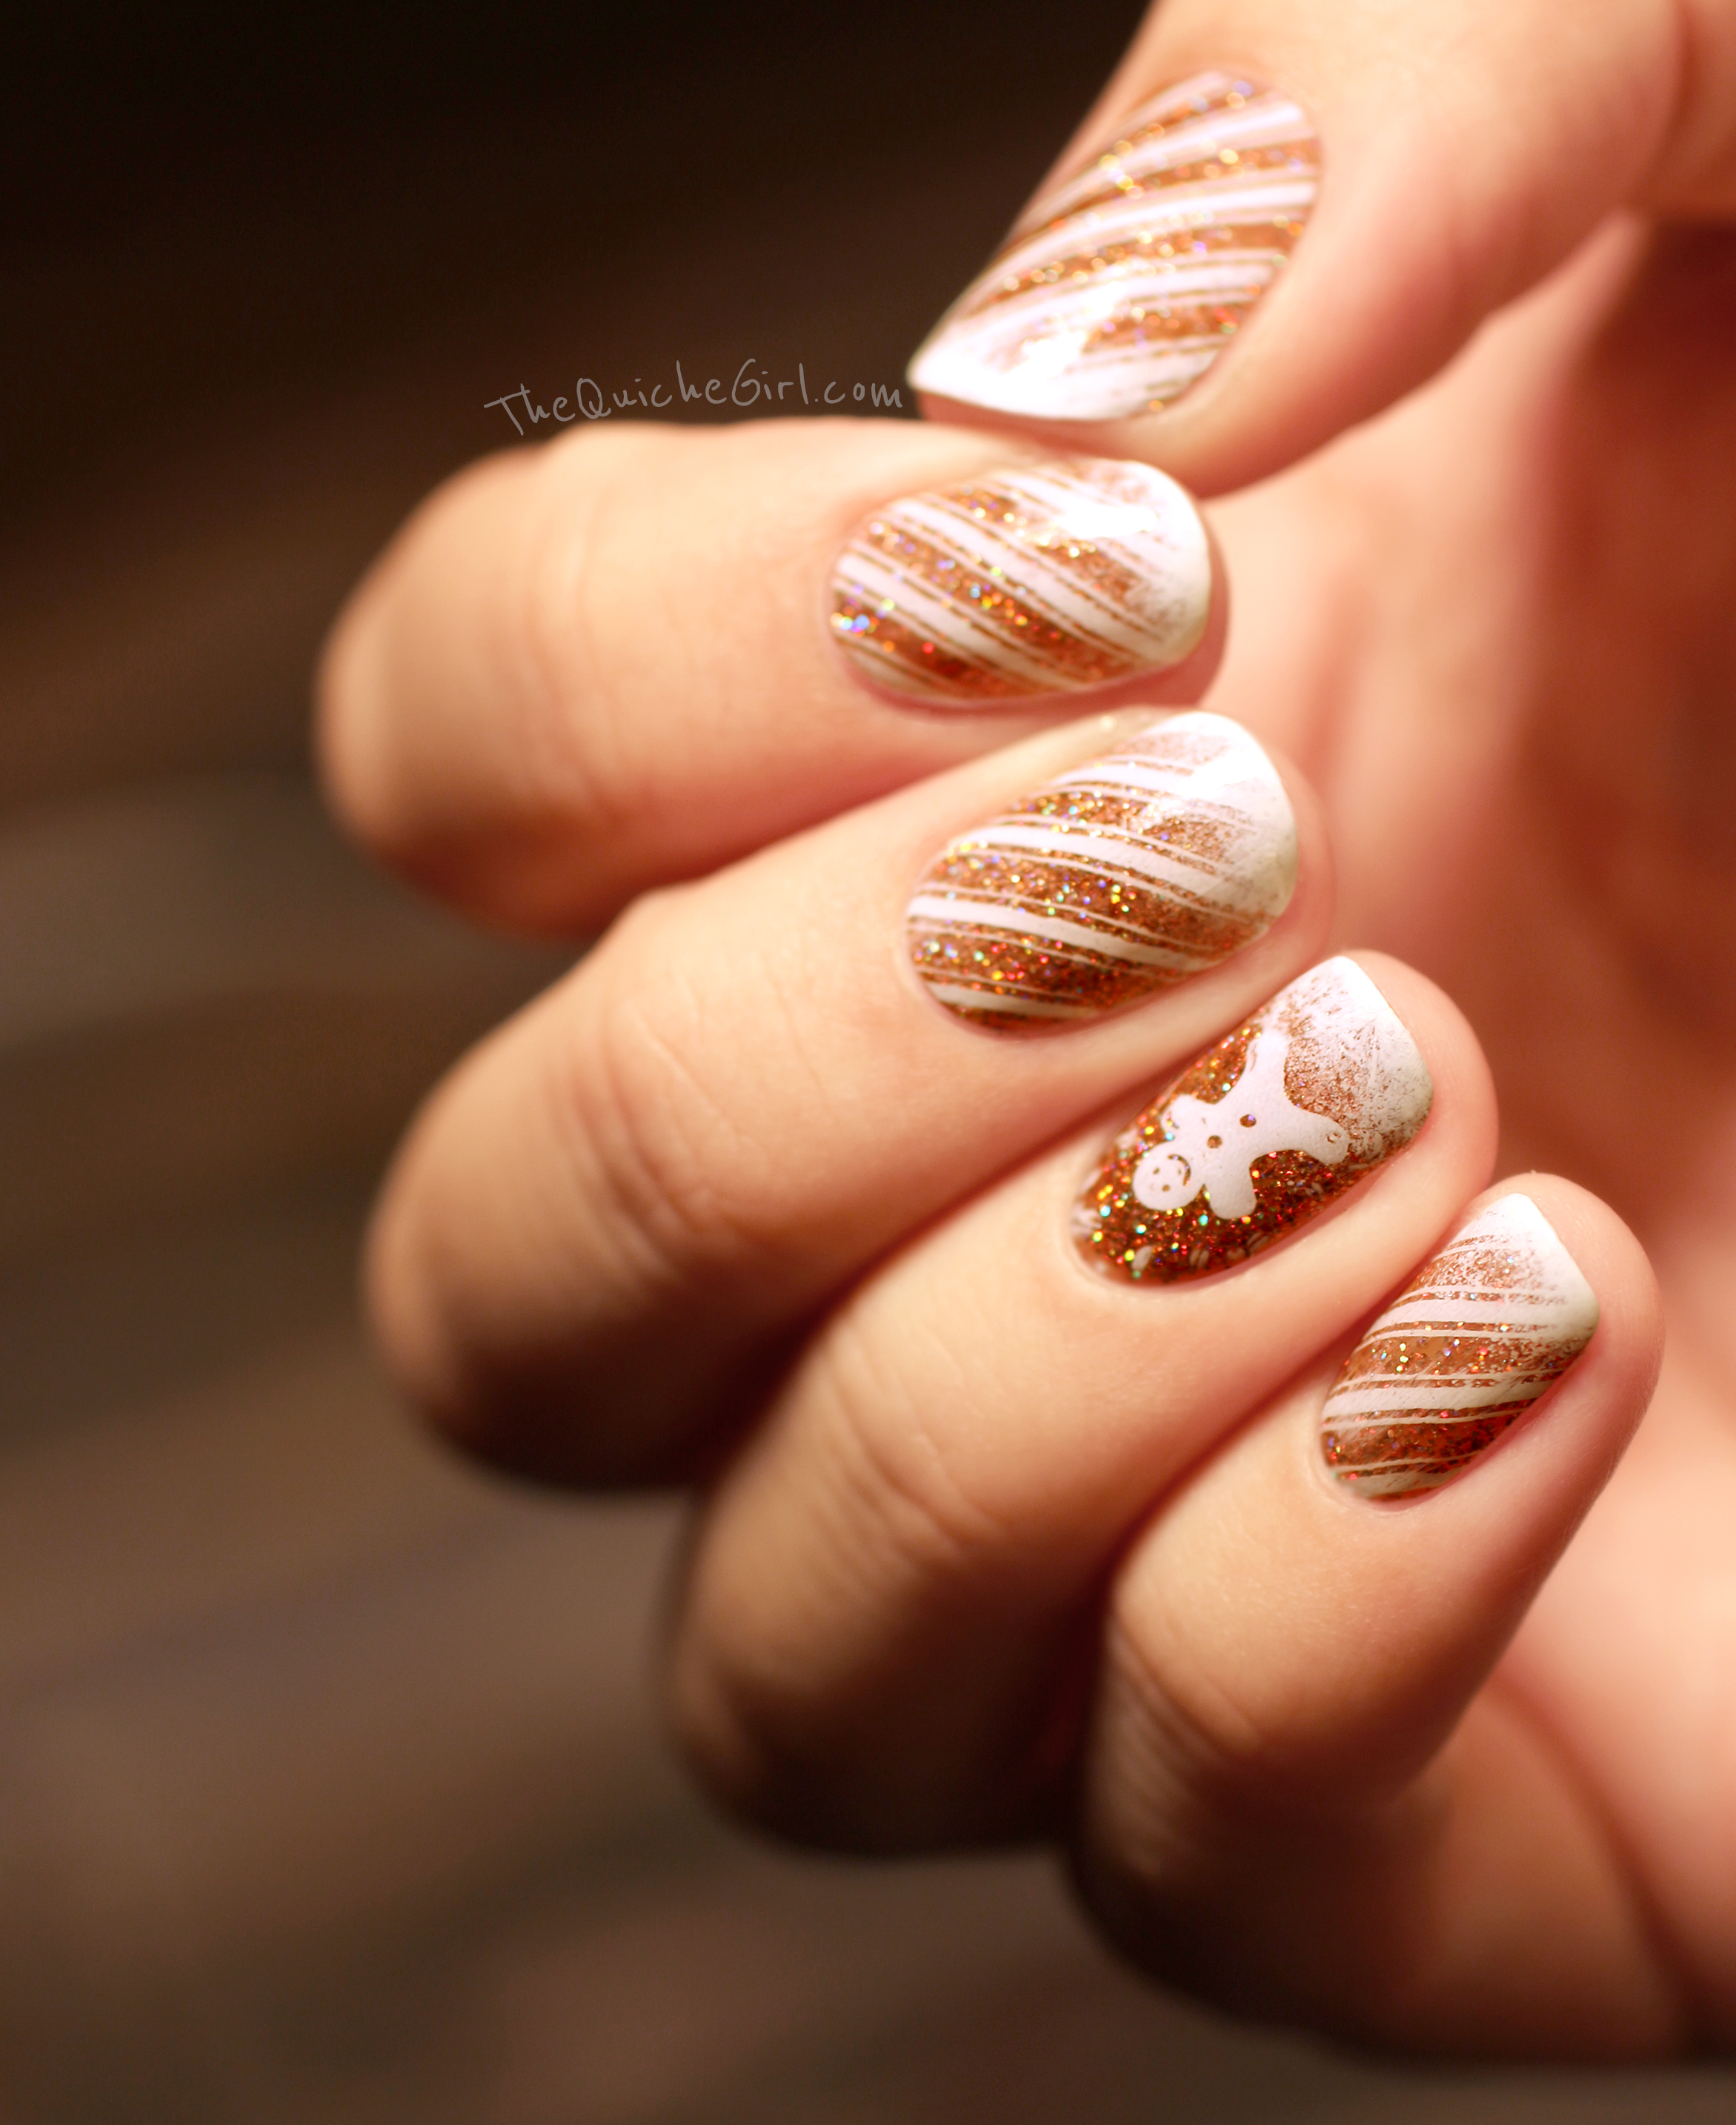 royal chapel, fun lacquer, macro,gingerbread, stamping, glitter , quichegirl